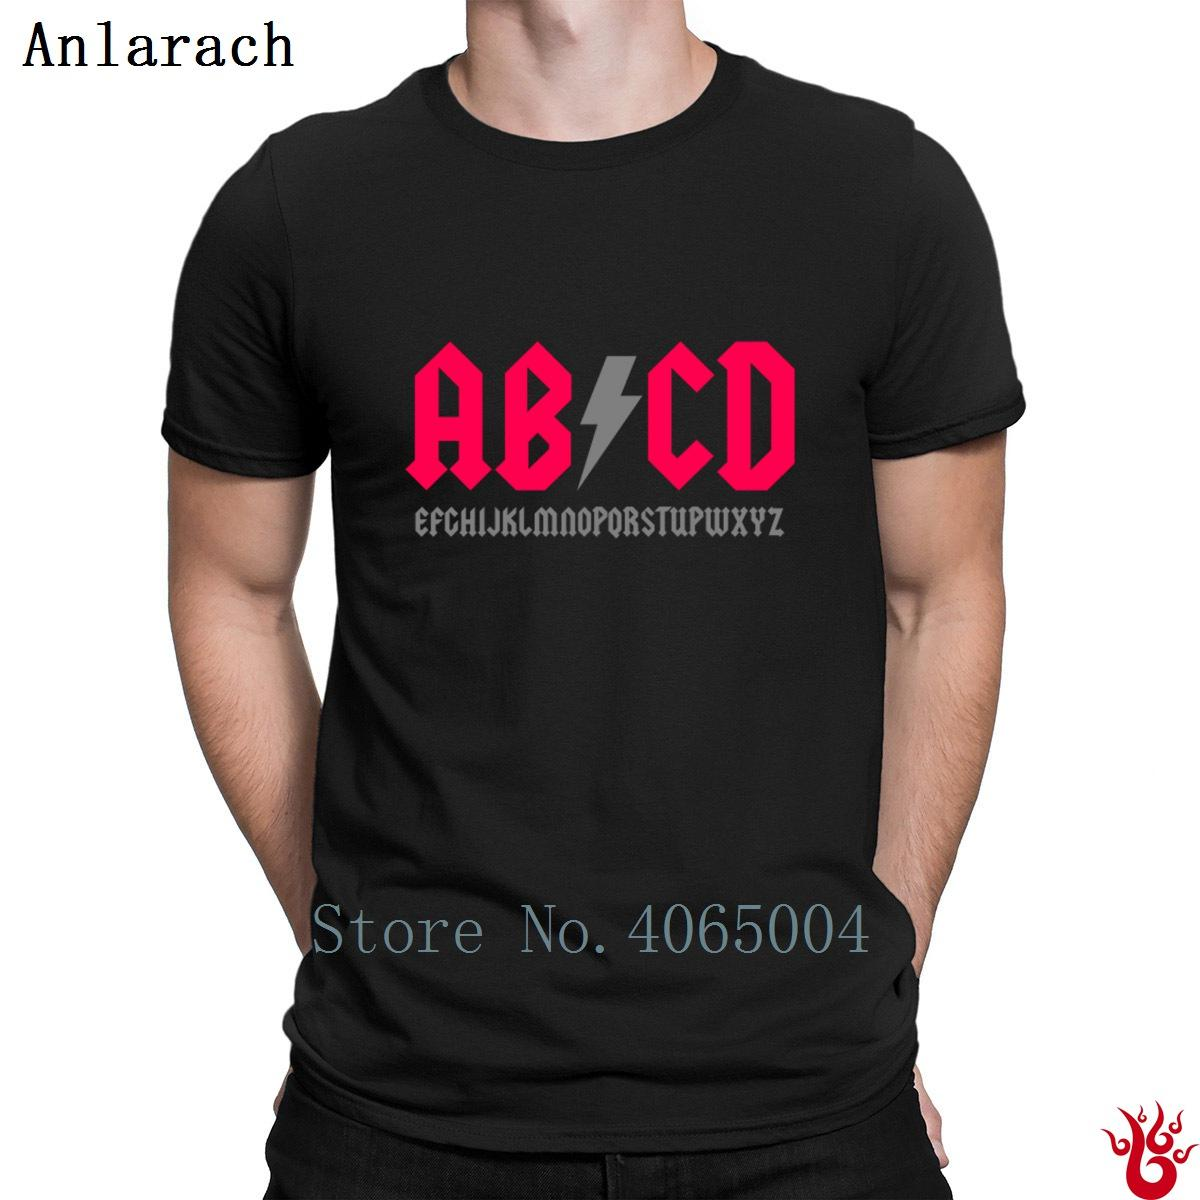 Abcd Parody T-Shirt Normal Cotton Printed Hip Hop Men's Tshirt 2018 Anti-Wrinkle New Fashion S-3xl Leisure